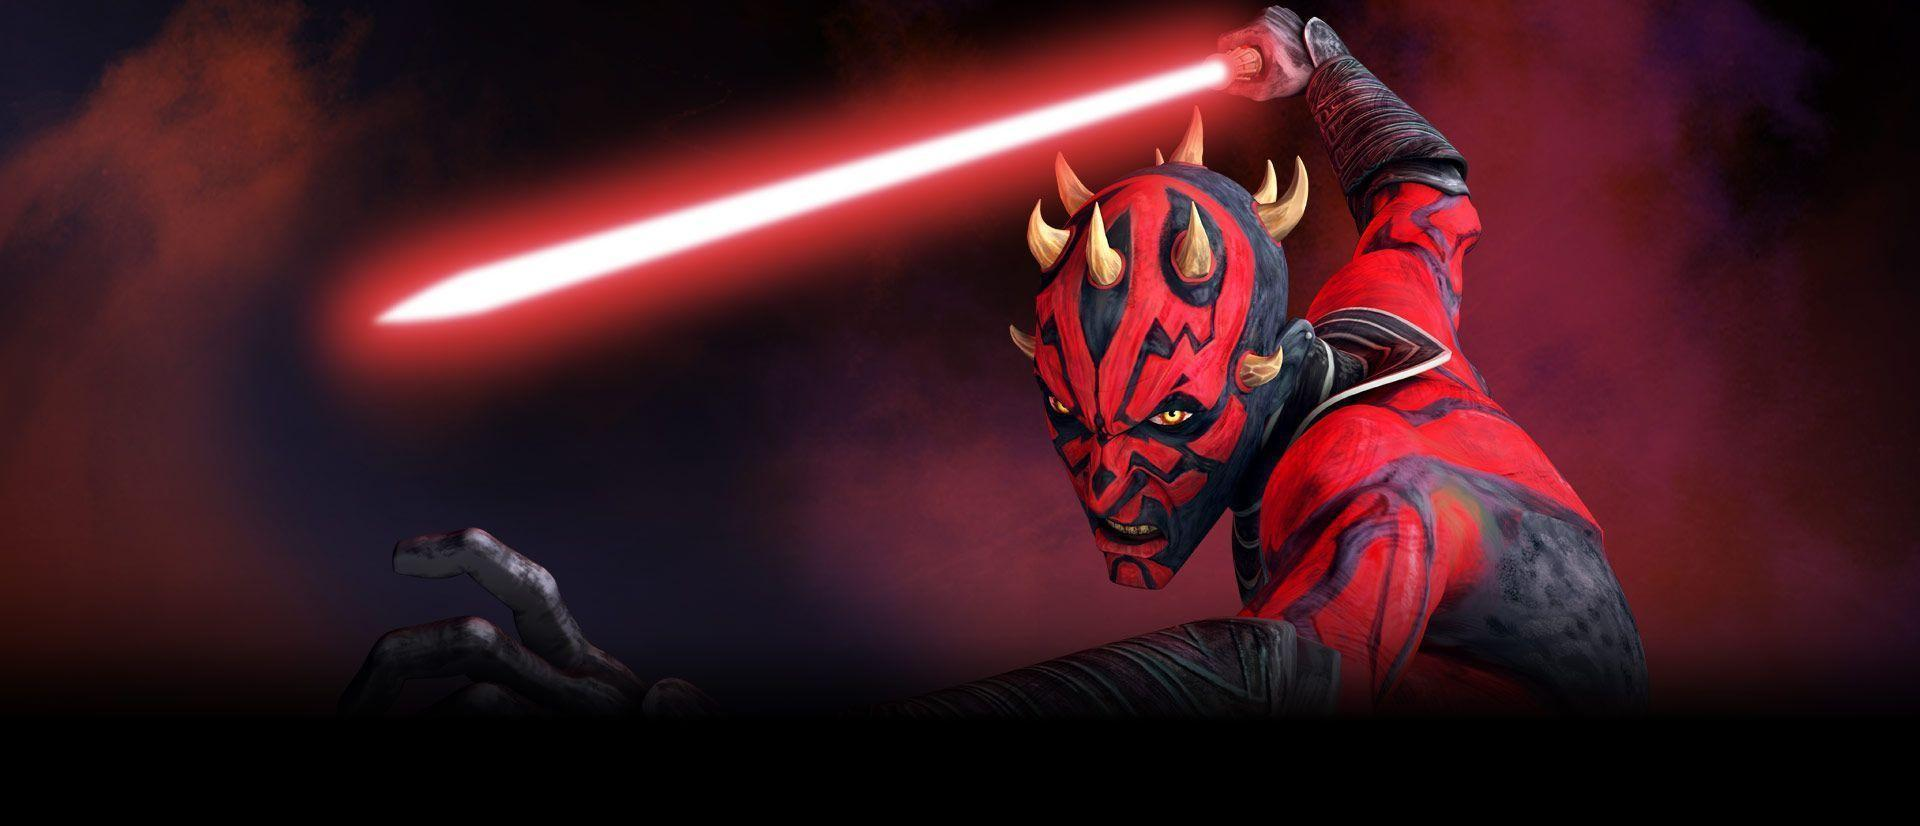 Image For > Darth Maul Clone Wars Wallpapers